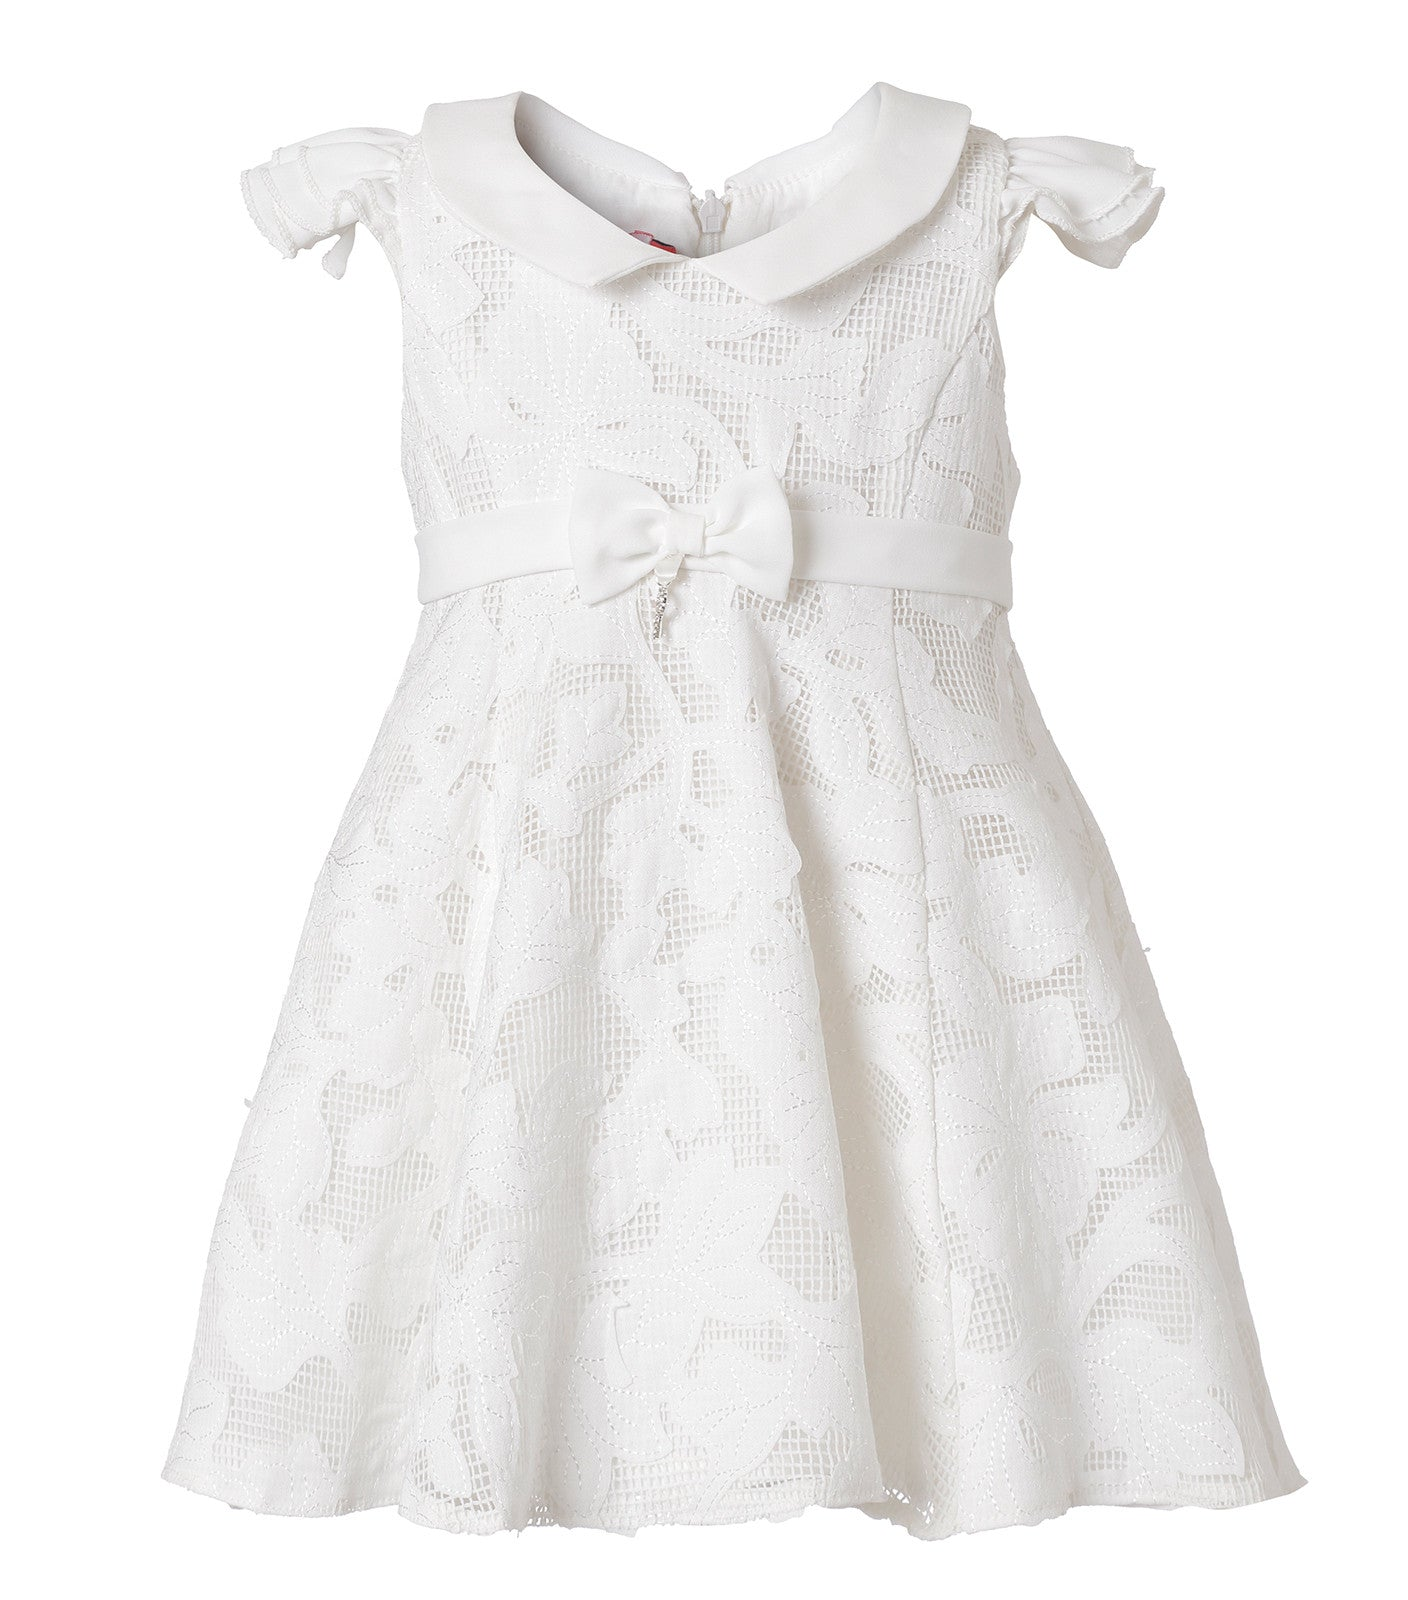 Baby Girls Floral lace Christening Dress in White